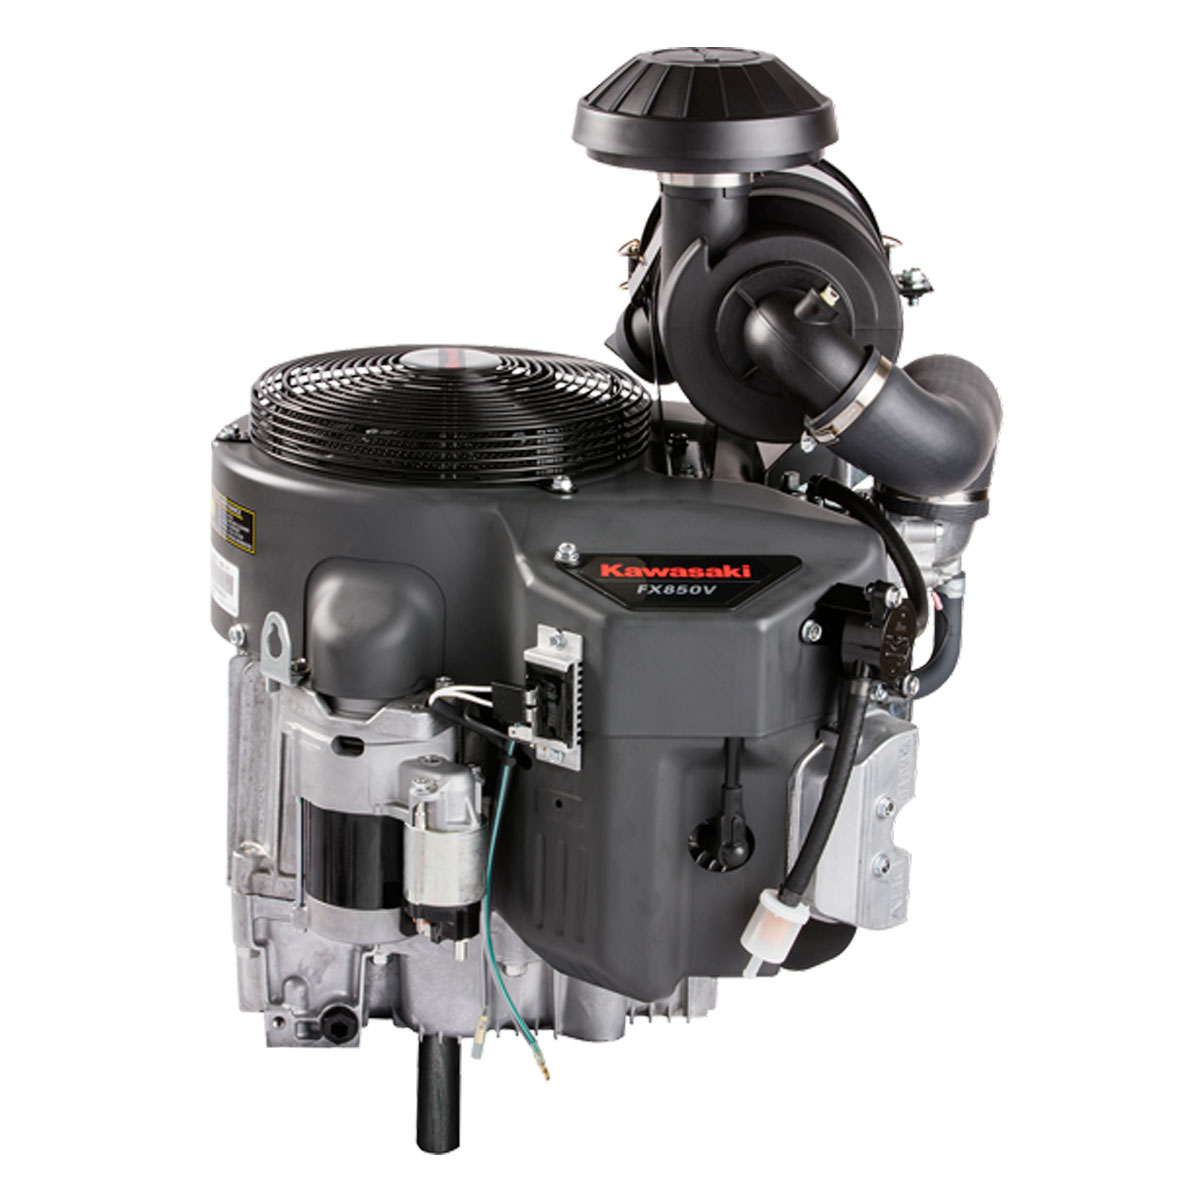 kawasaki 27 hp engine for scag mower replaces fx751v, fx801v & fx850v  engines fx850v-fs00s | kawasaki engine store  kawasaki engine store